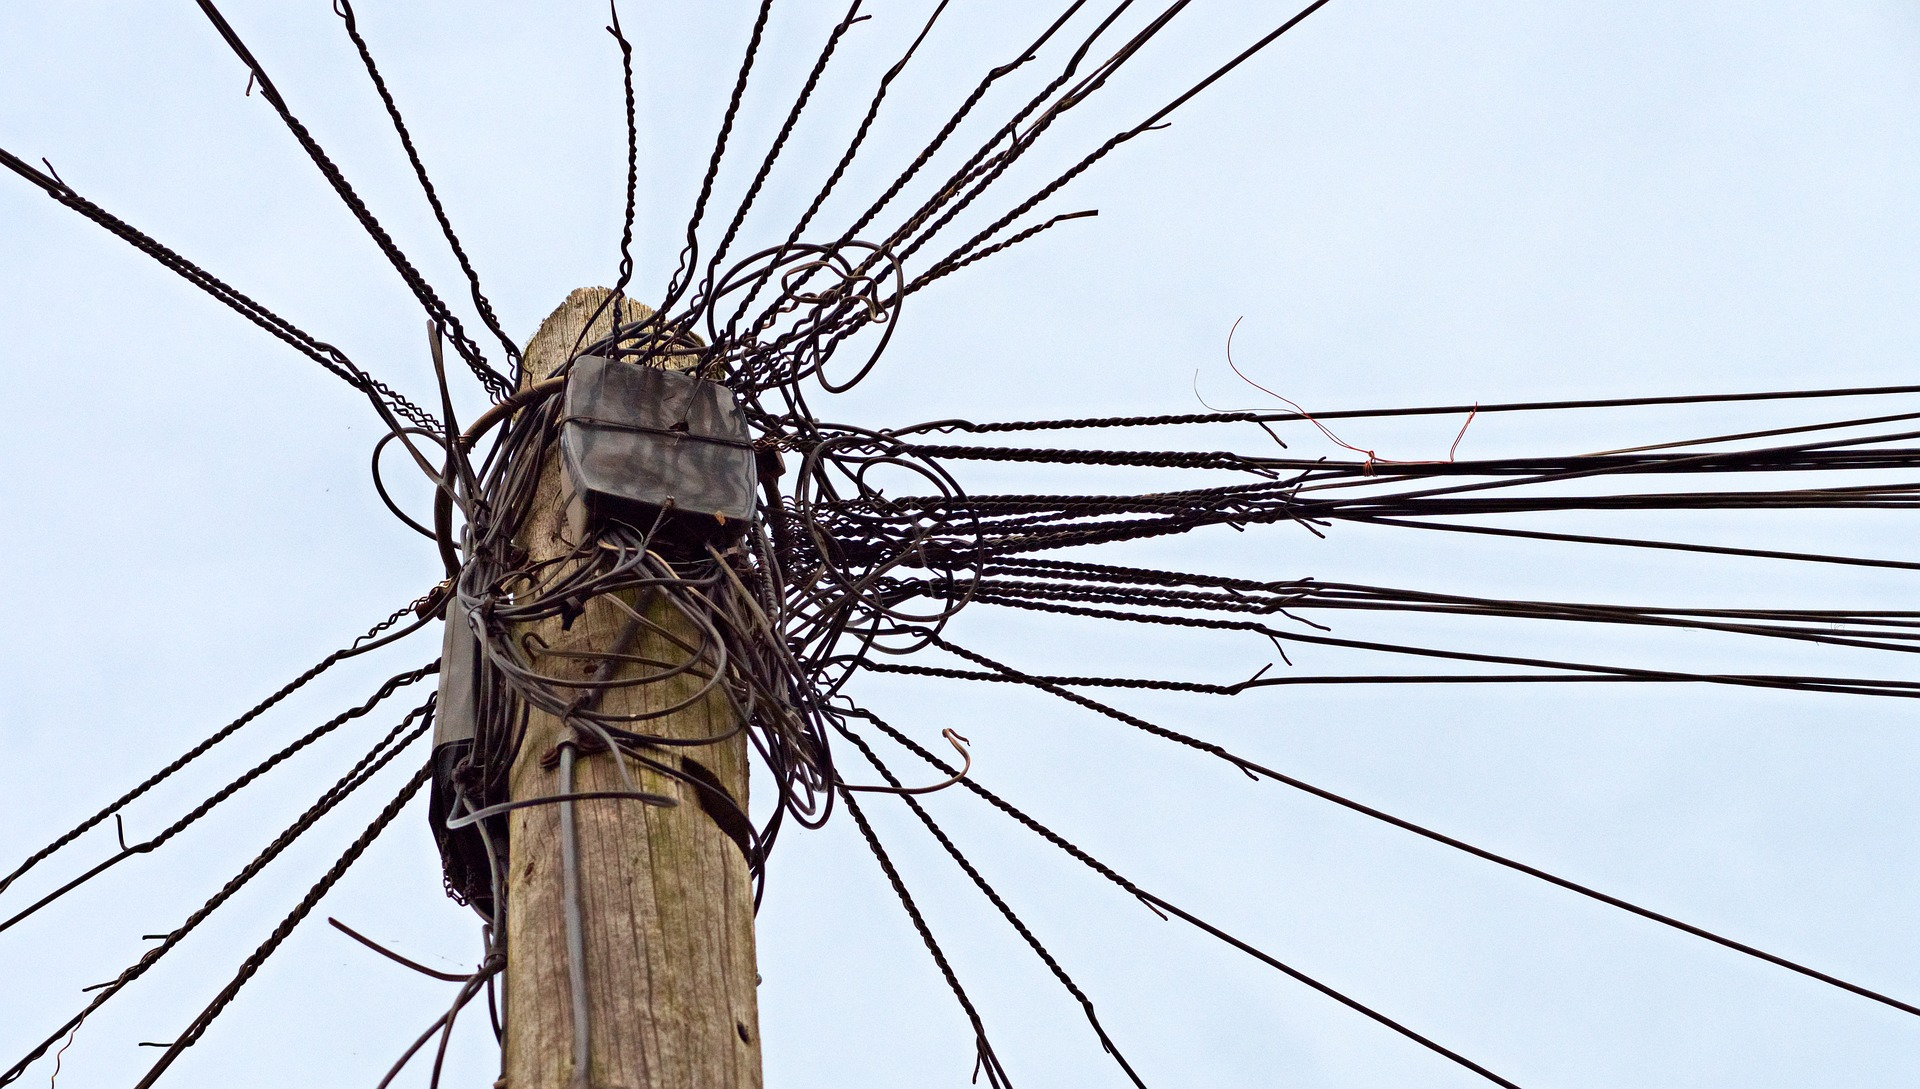 Image of a telephone pole with many different lines connected to it